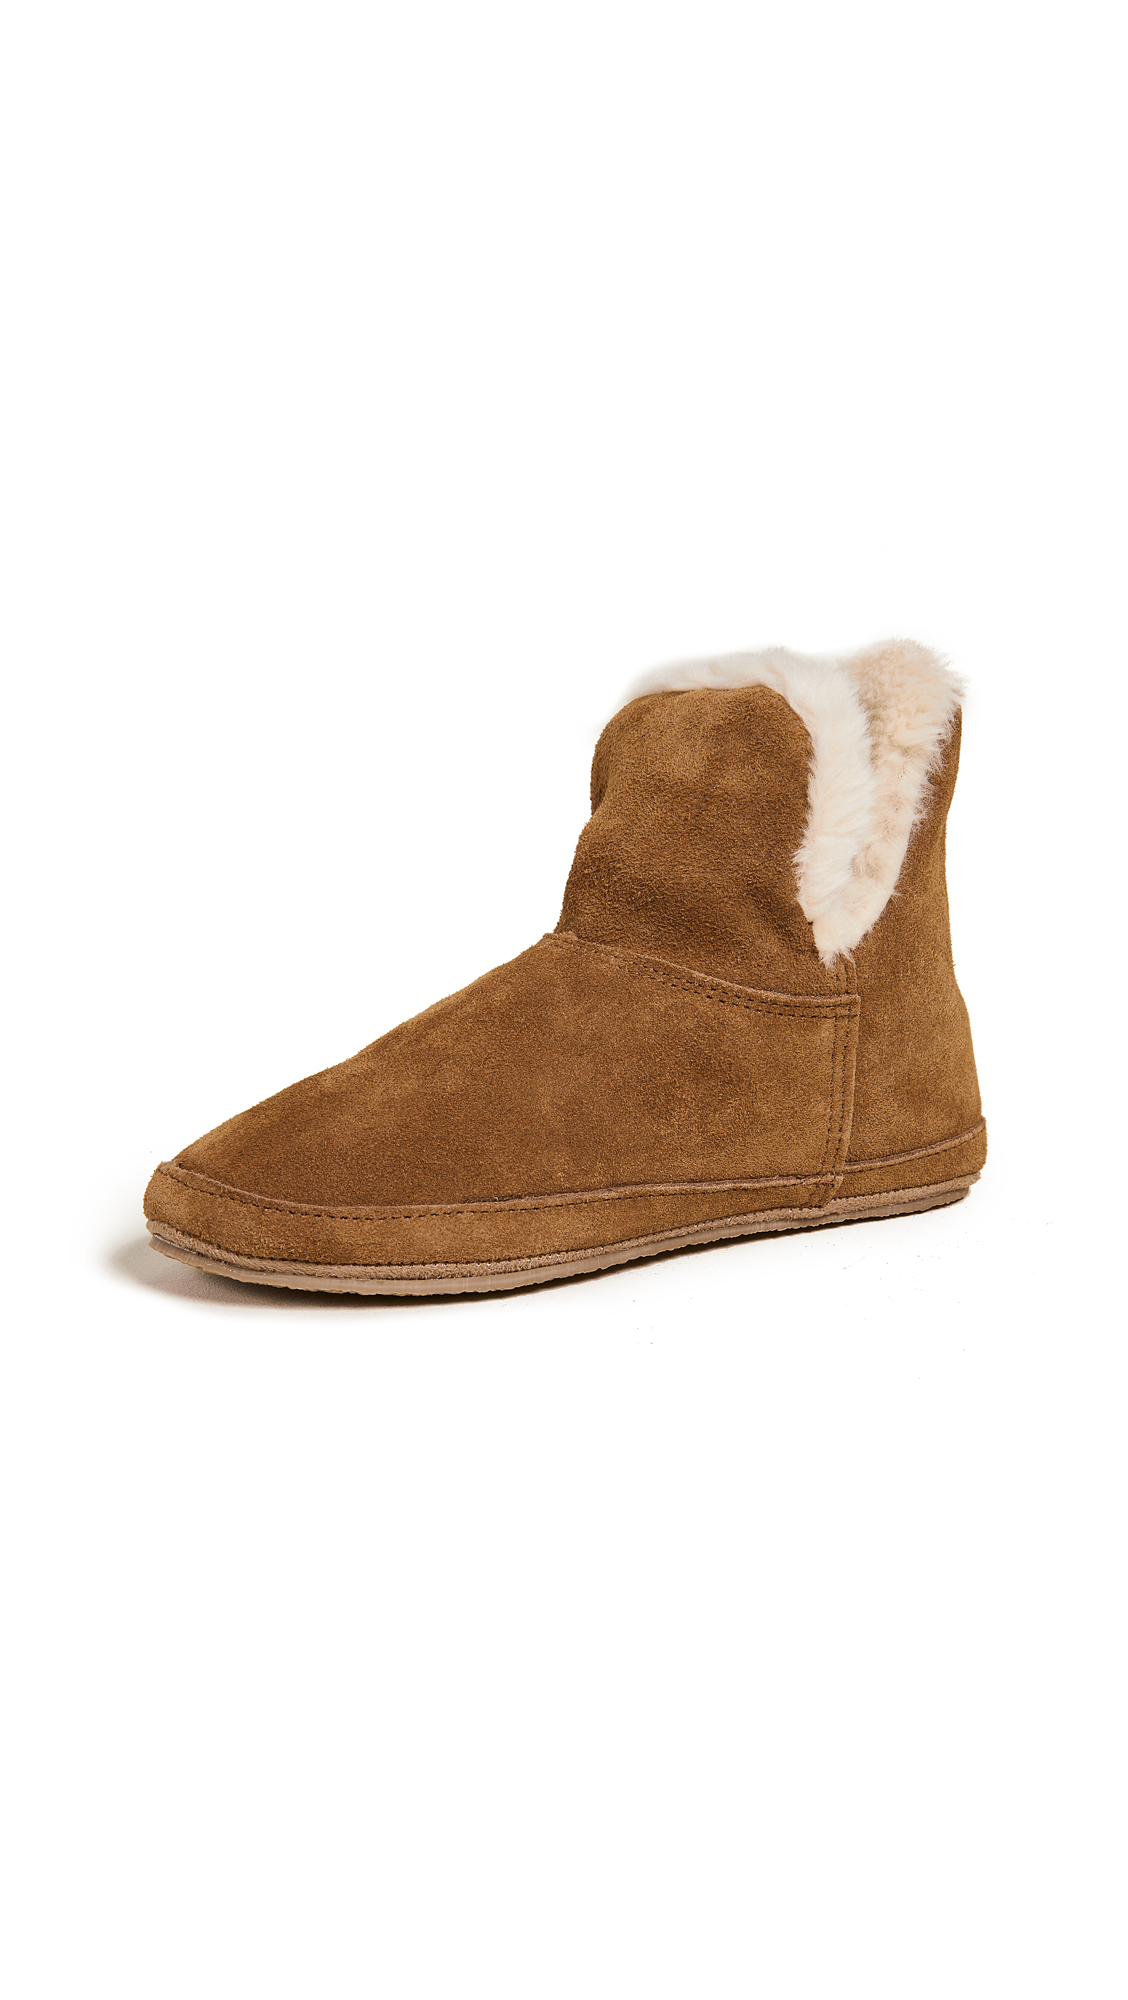 Madewell Bootie Slippers - Timber Beam